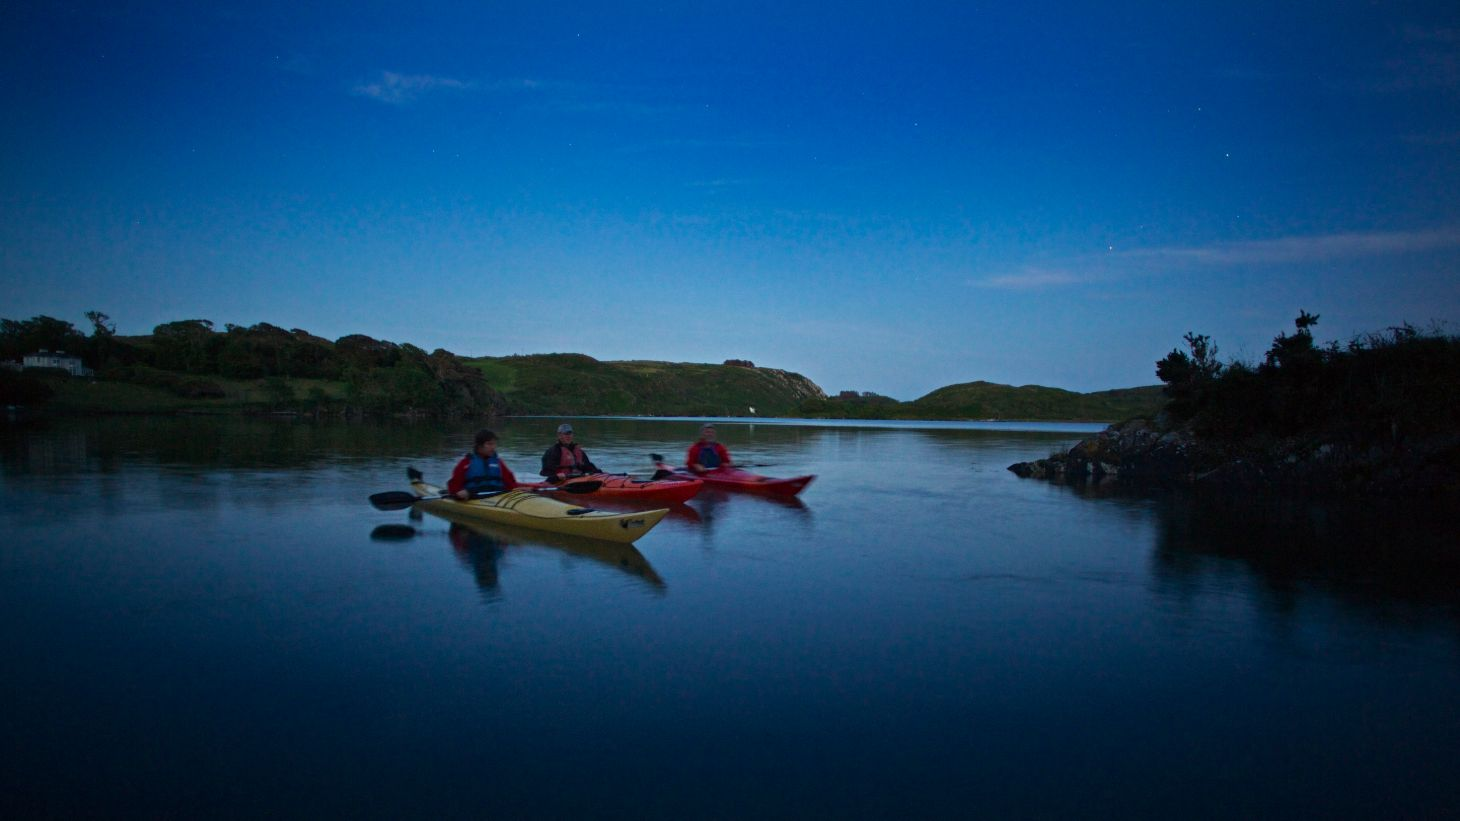 The evening light on Lough Hyne in West Cork.